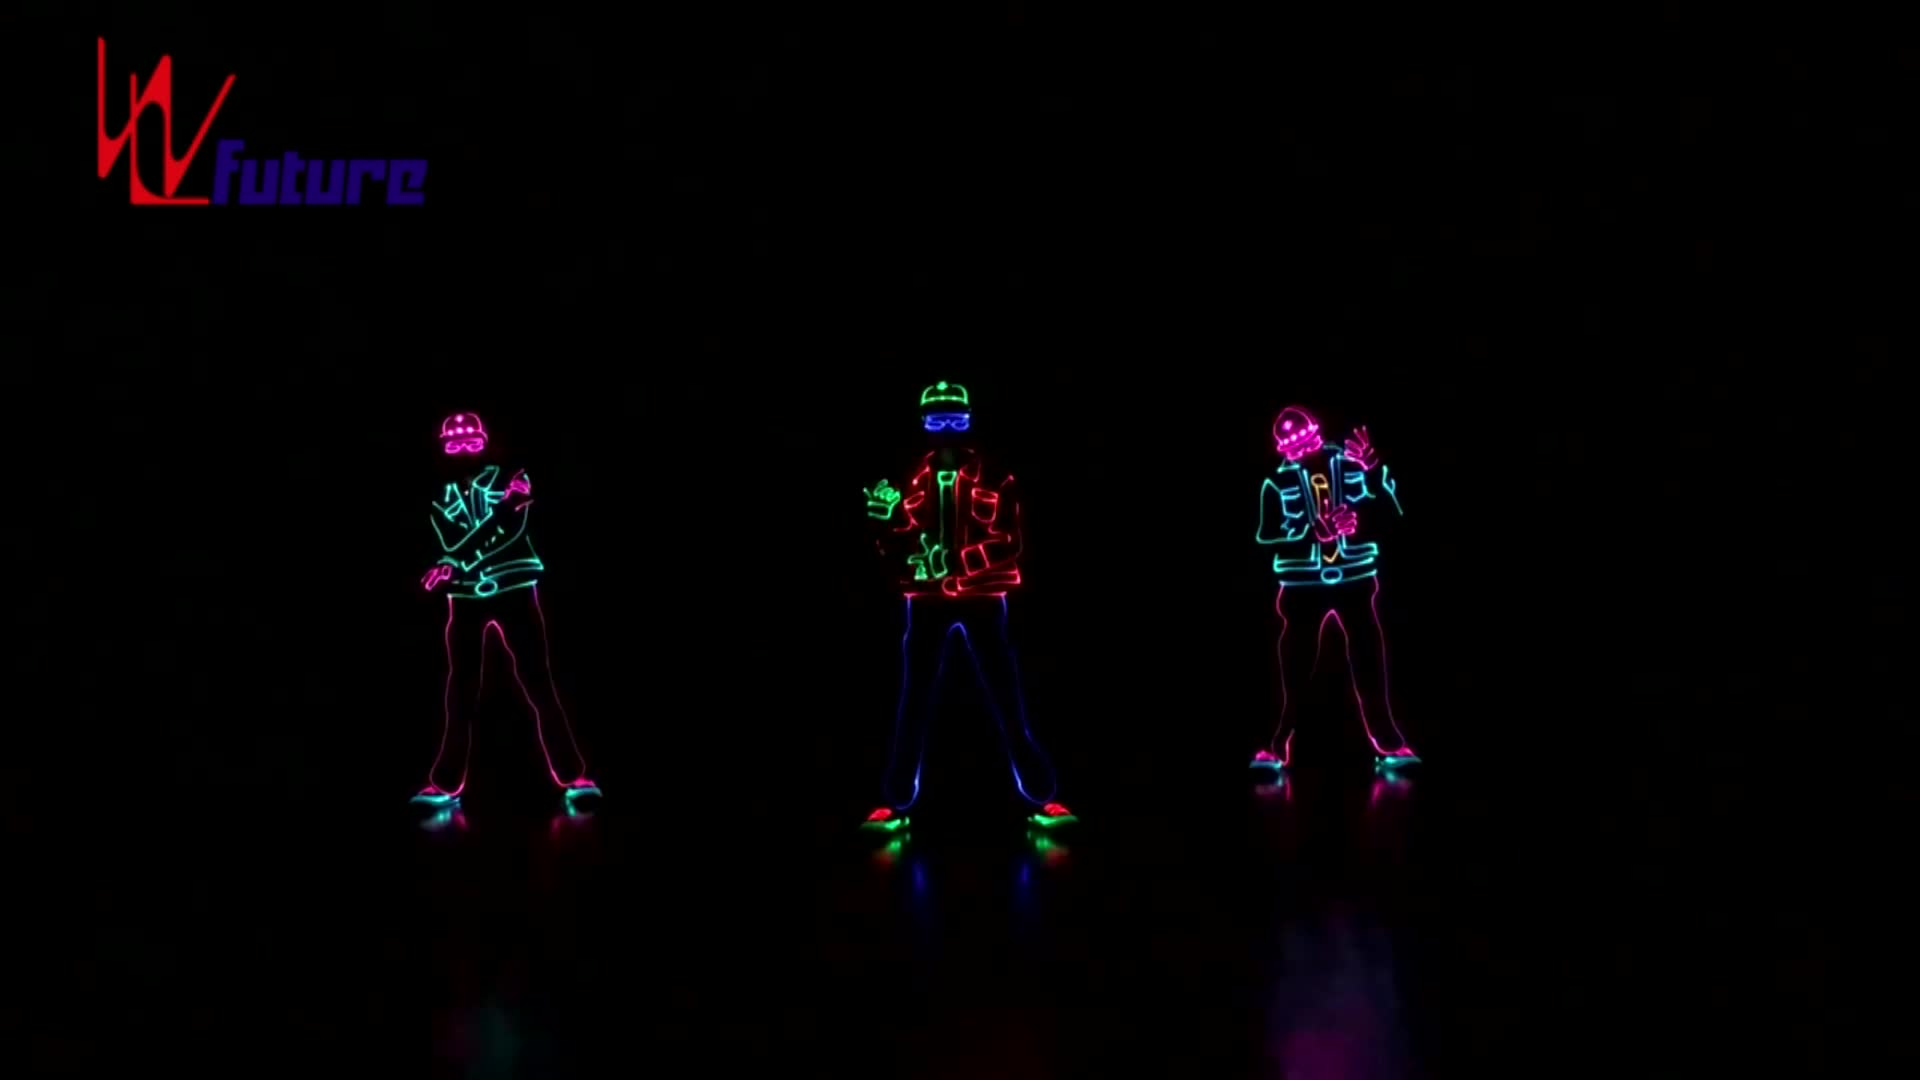 Hot sale hip hop LED tron costumes for team dance,tron dance clothing for men,led for clothes